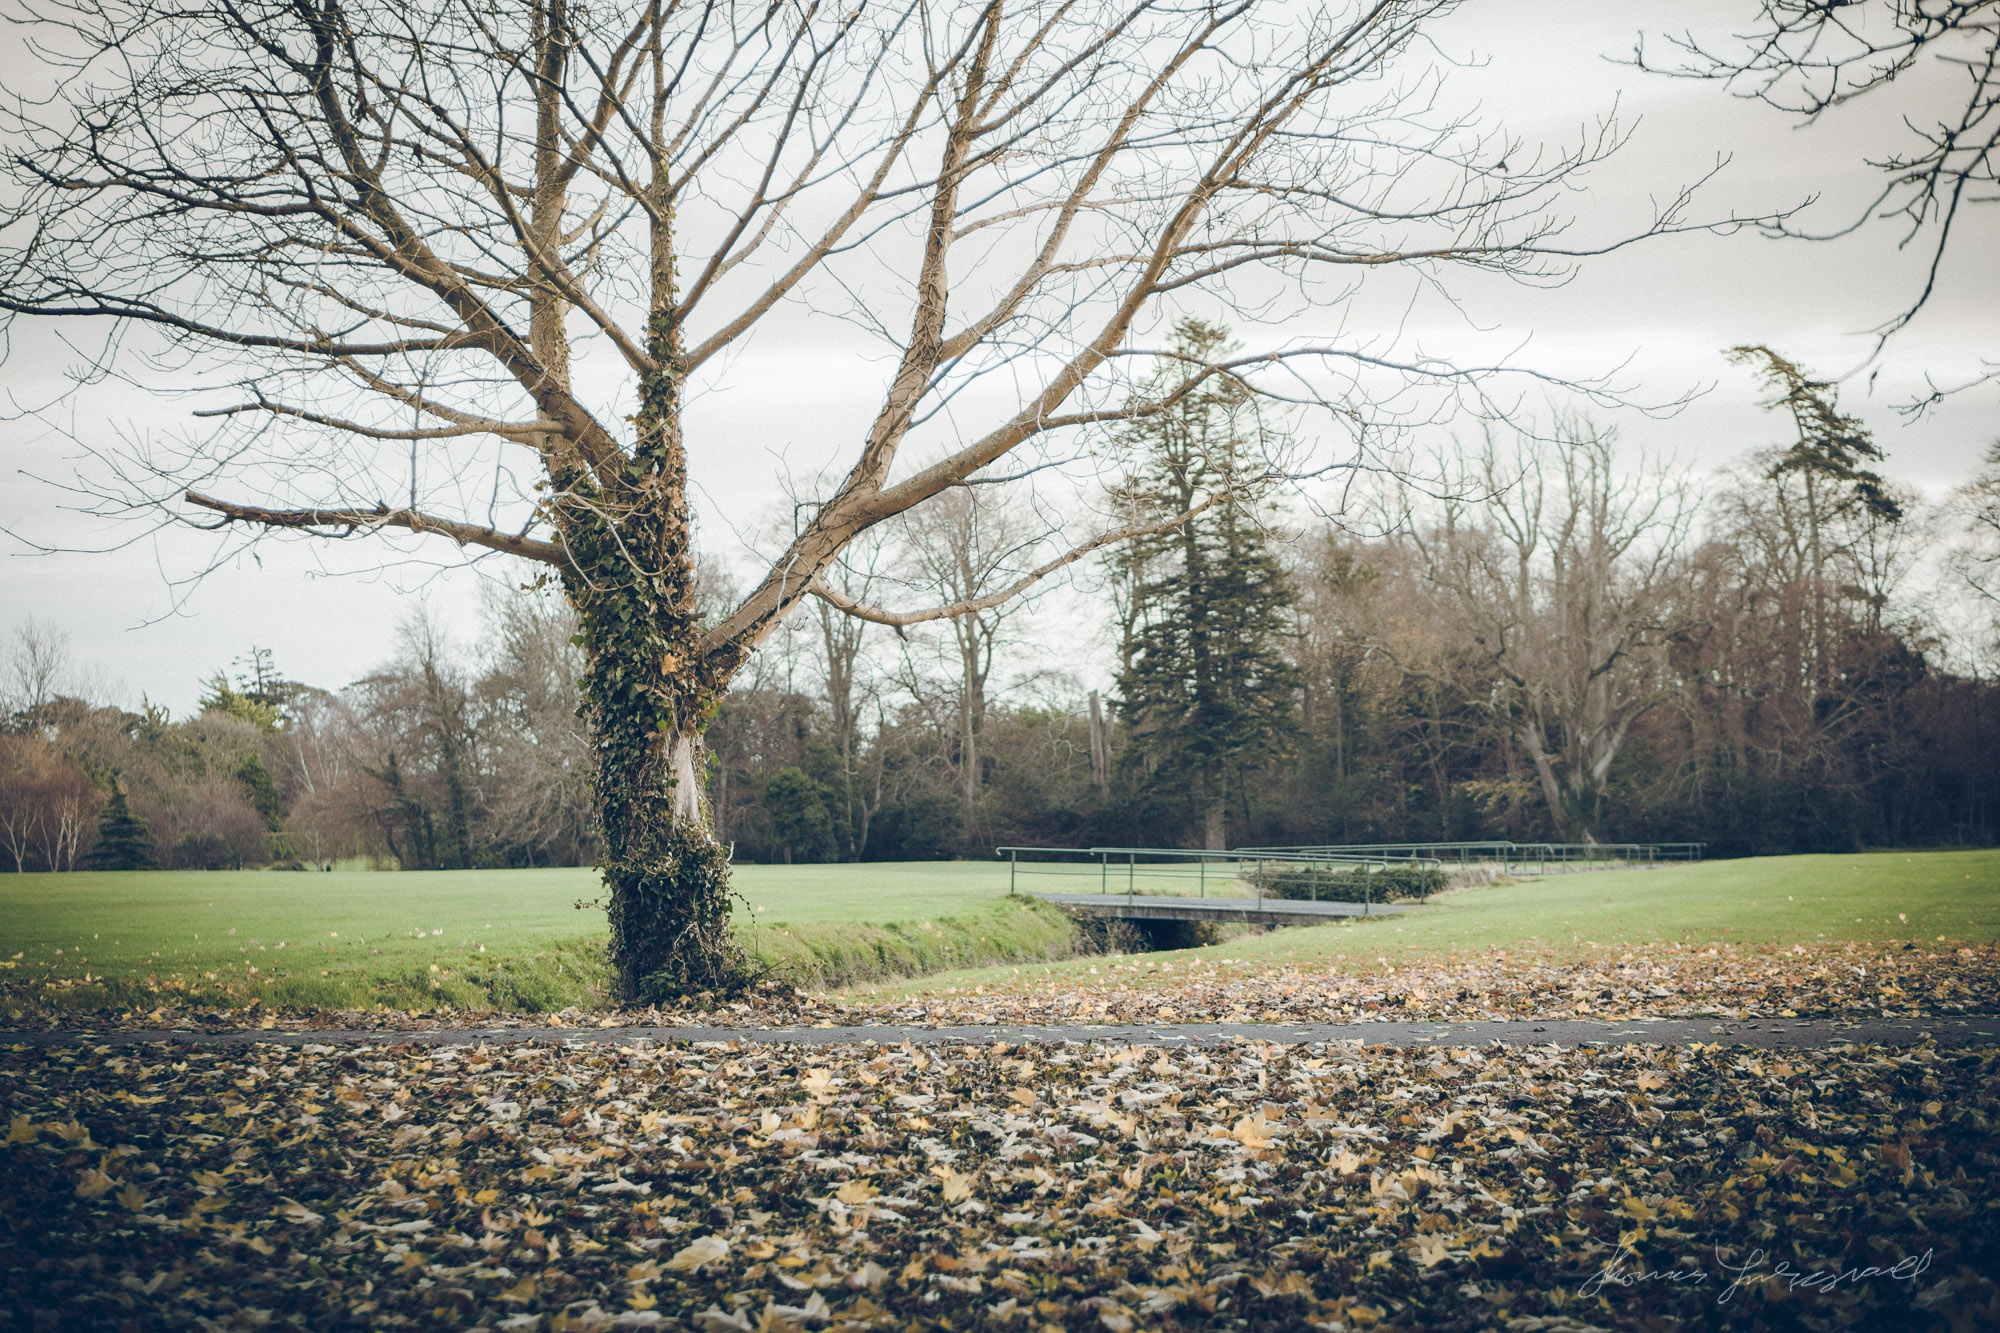 A Lonely Tree in Marley Park. Sony Nex7, Processed in Lightroom